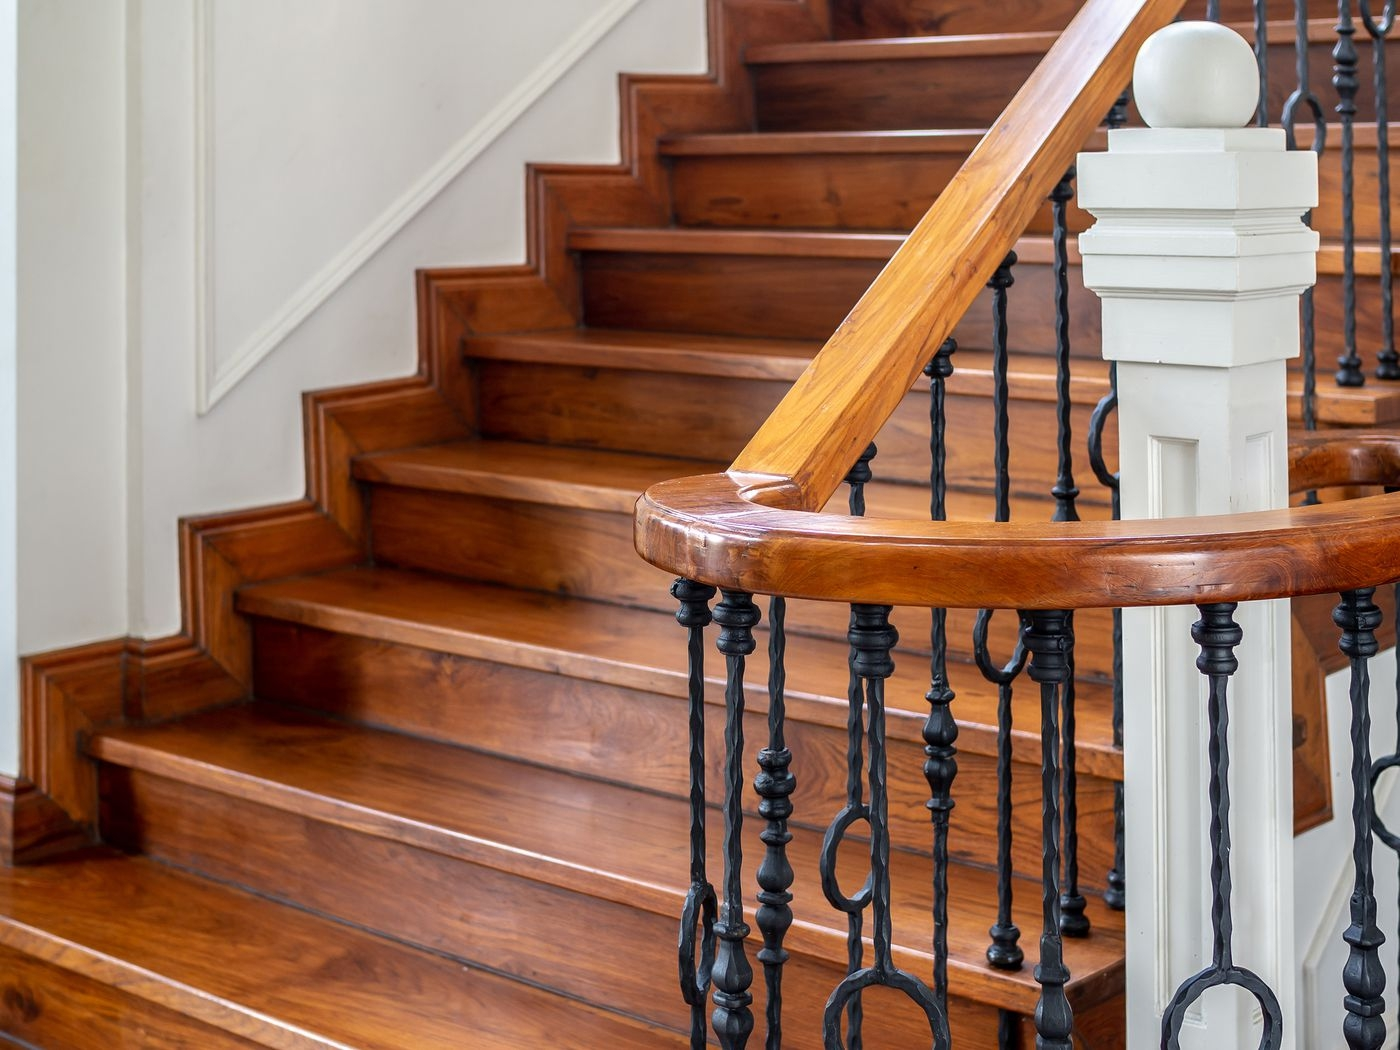 How To Fix Squeaky Stairs This Old House | No Carpet On Stairs | Stair Case | Wood | Non Slip | Prefinished Stair | Hardwood